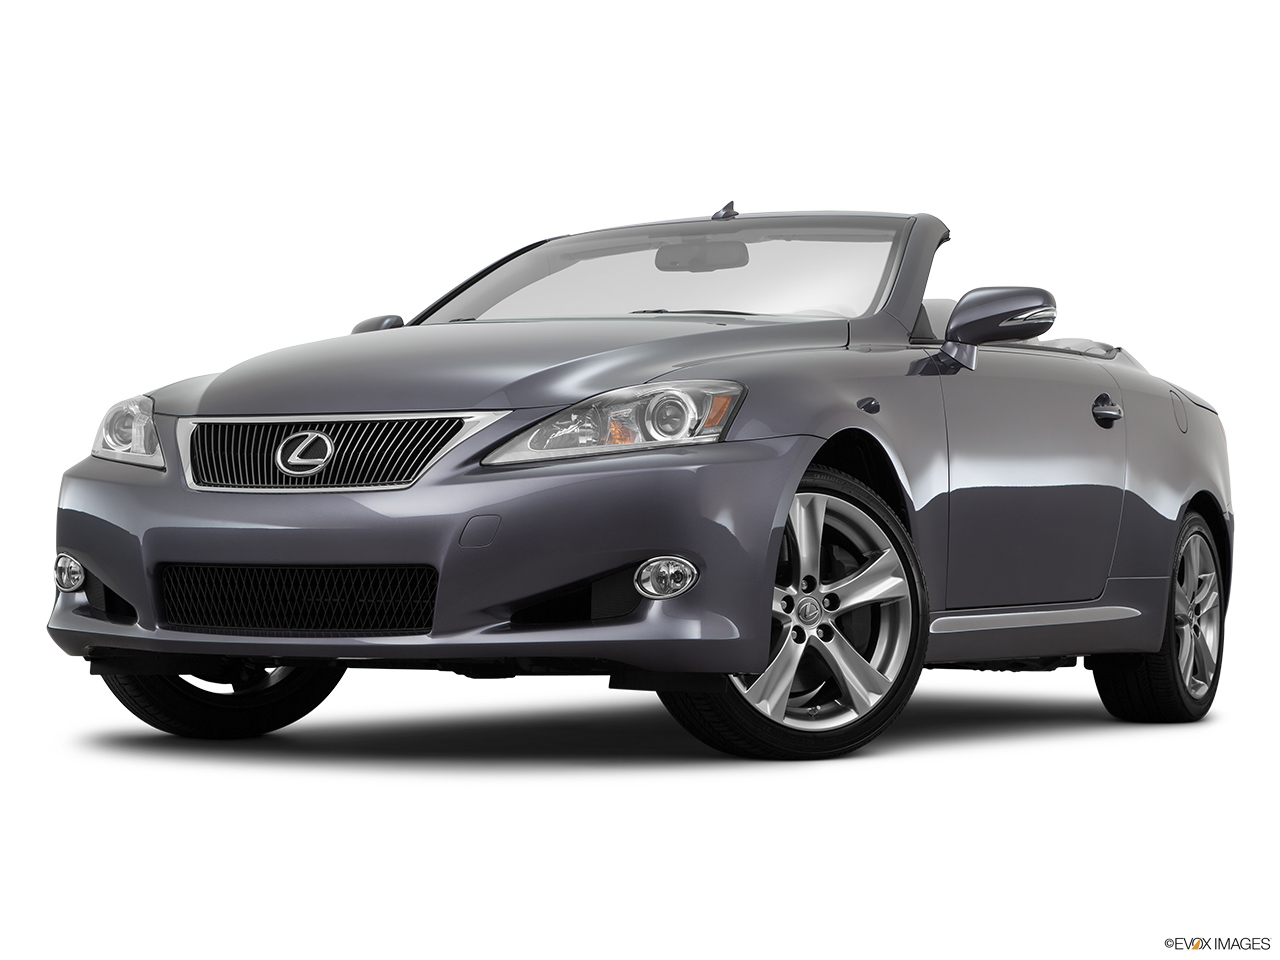 2015 Lexus IS C IS 350 Front angle view, low wide perspective.